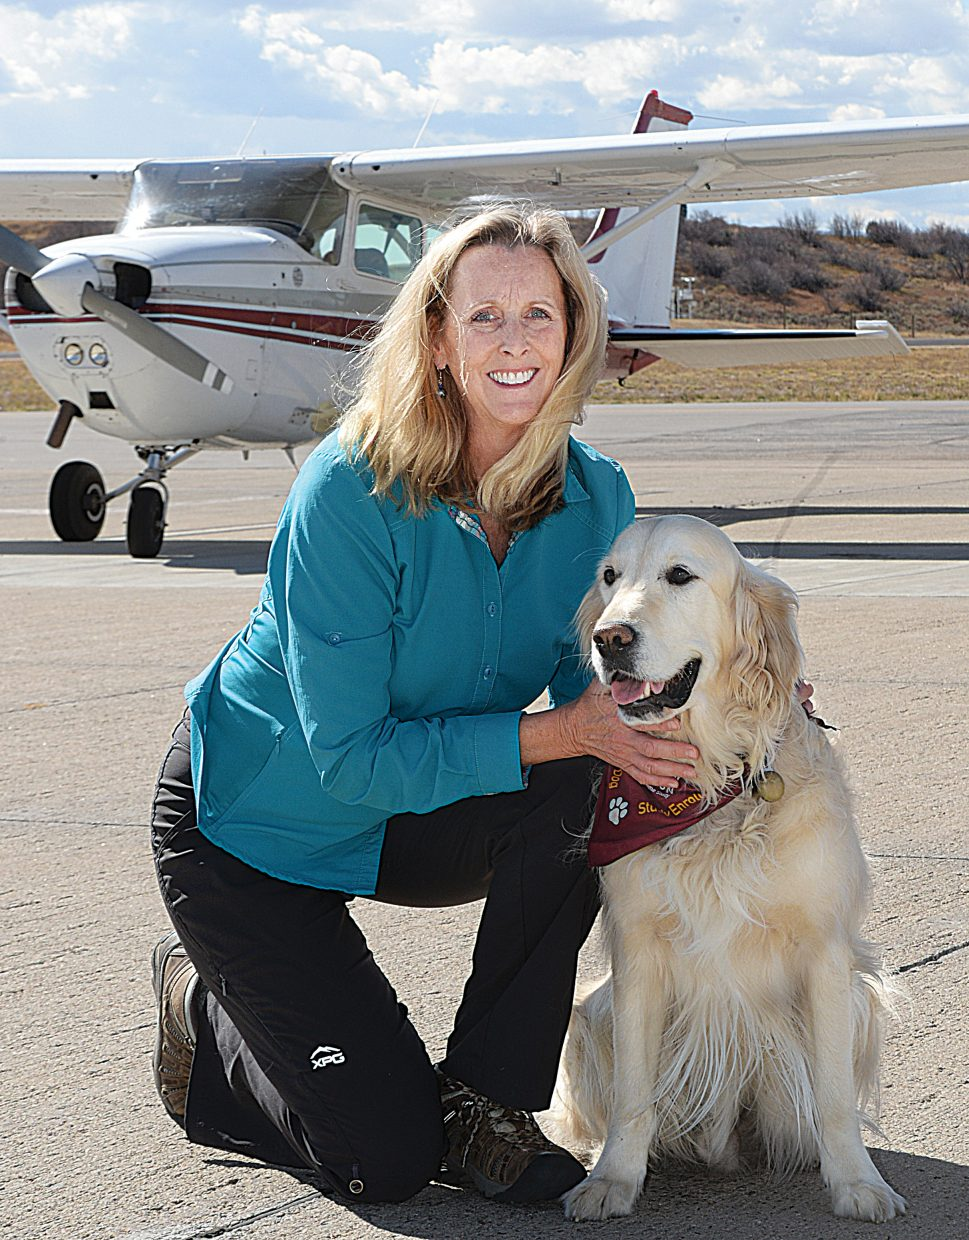 Stacie Fain — pictured with her co-pilot, Rex, the new airport dog — has assumed the role as the Steamboat Springs Airport manager. Fain relocated to Steamboat from Colorado Springs to accept the position at Bob Adams Field.